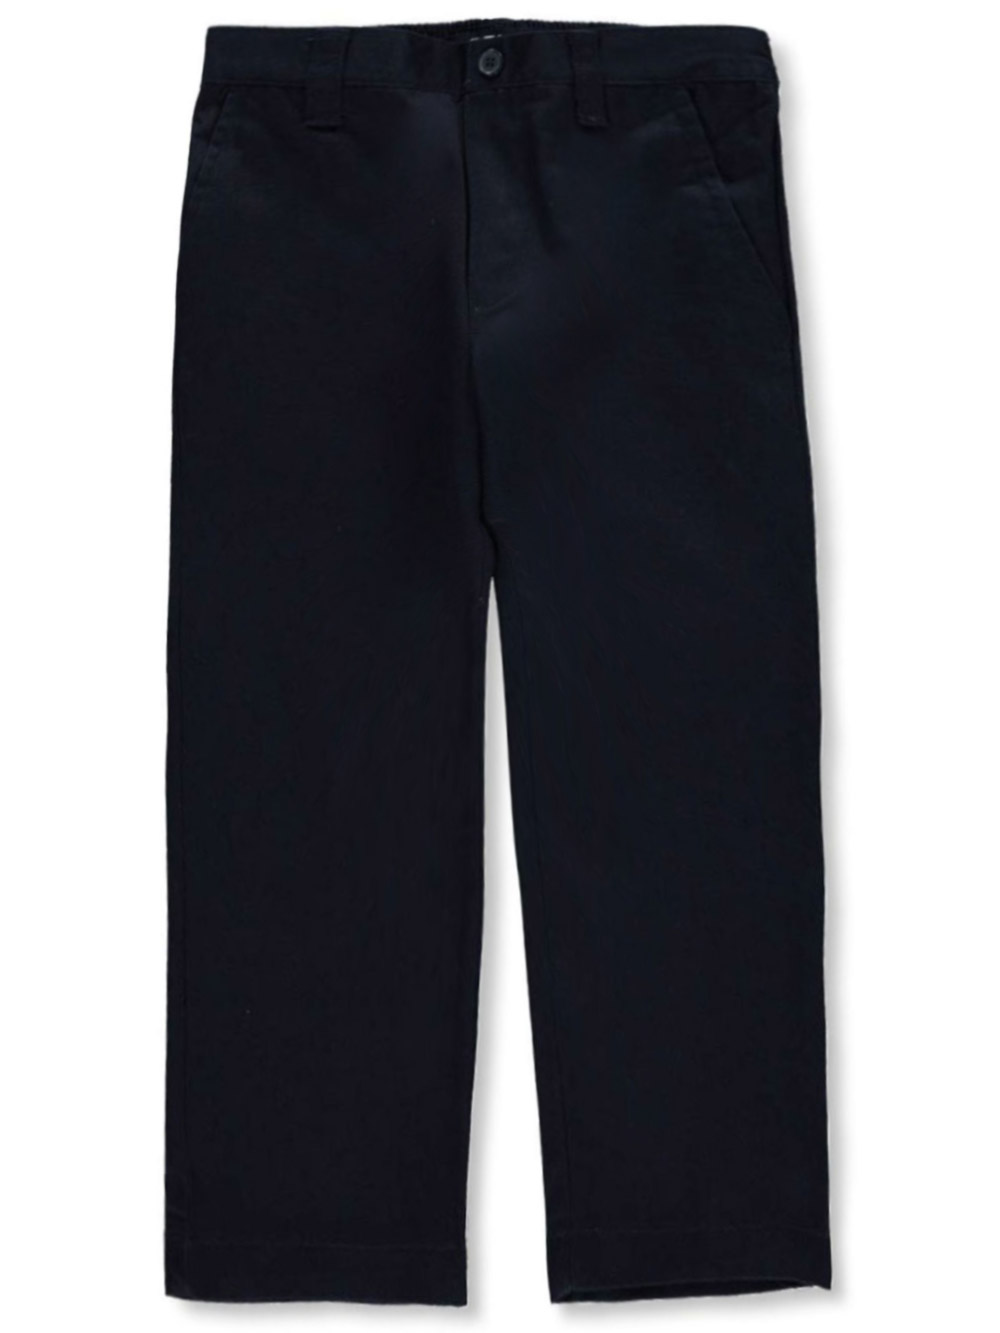 Image of French Toast School Uniform Little Boys Pleated Wrinkle No More Relaxed Fit Pants Sizes 4  7  navy 4